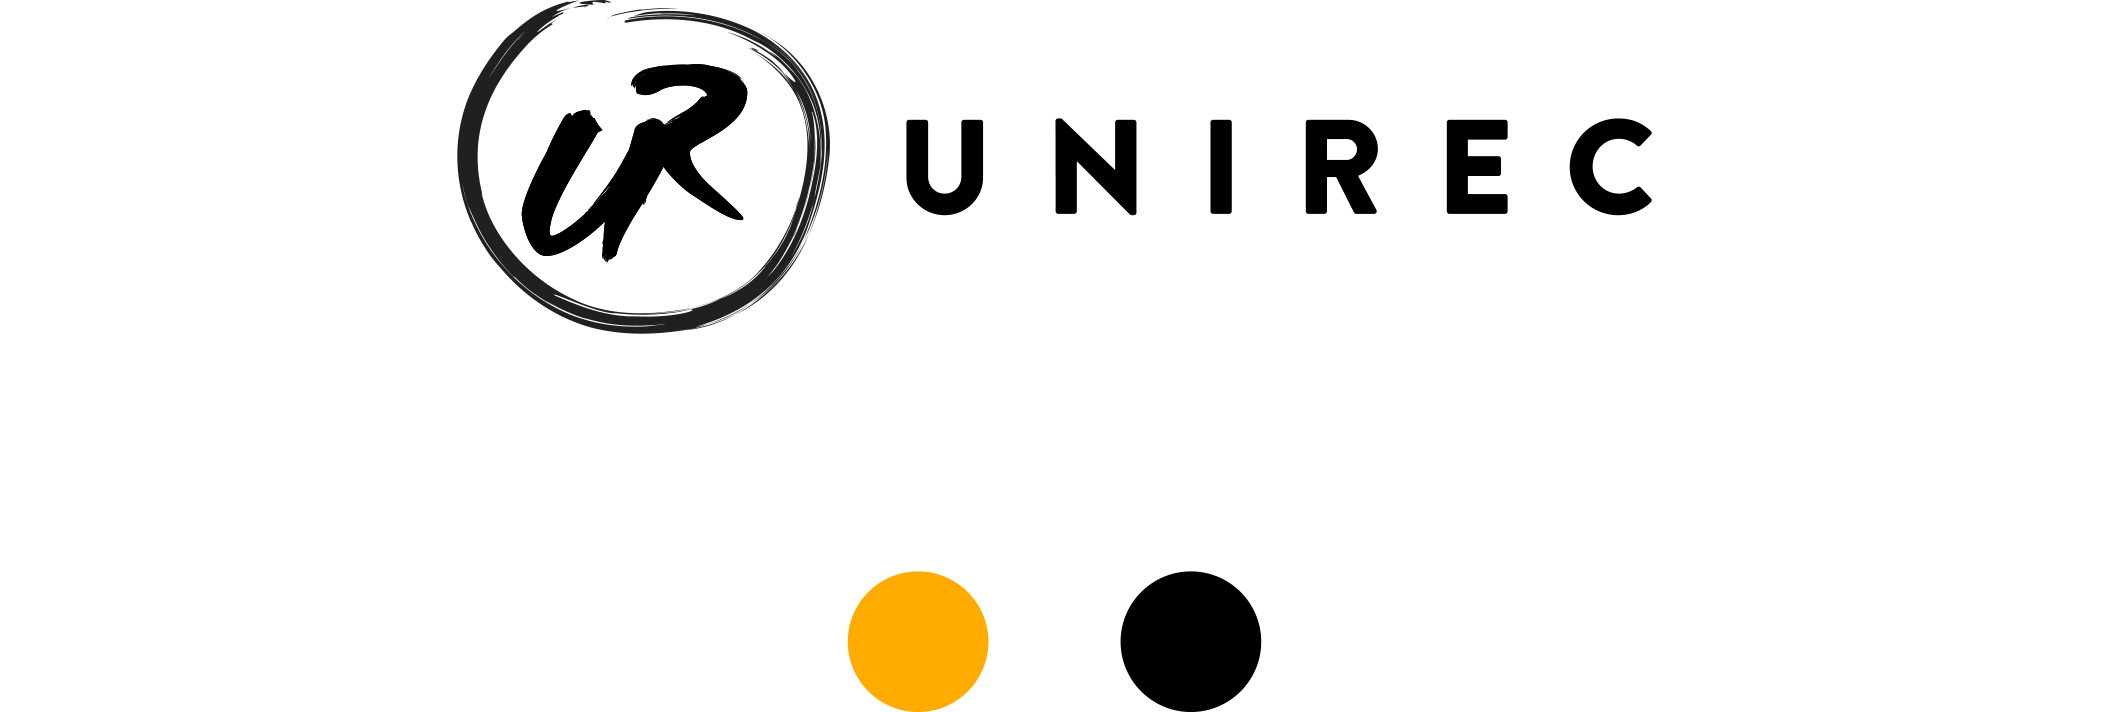 unirec logo mark colour2x